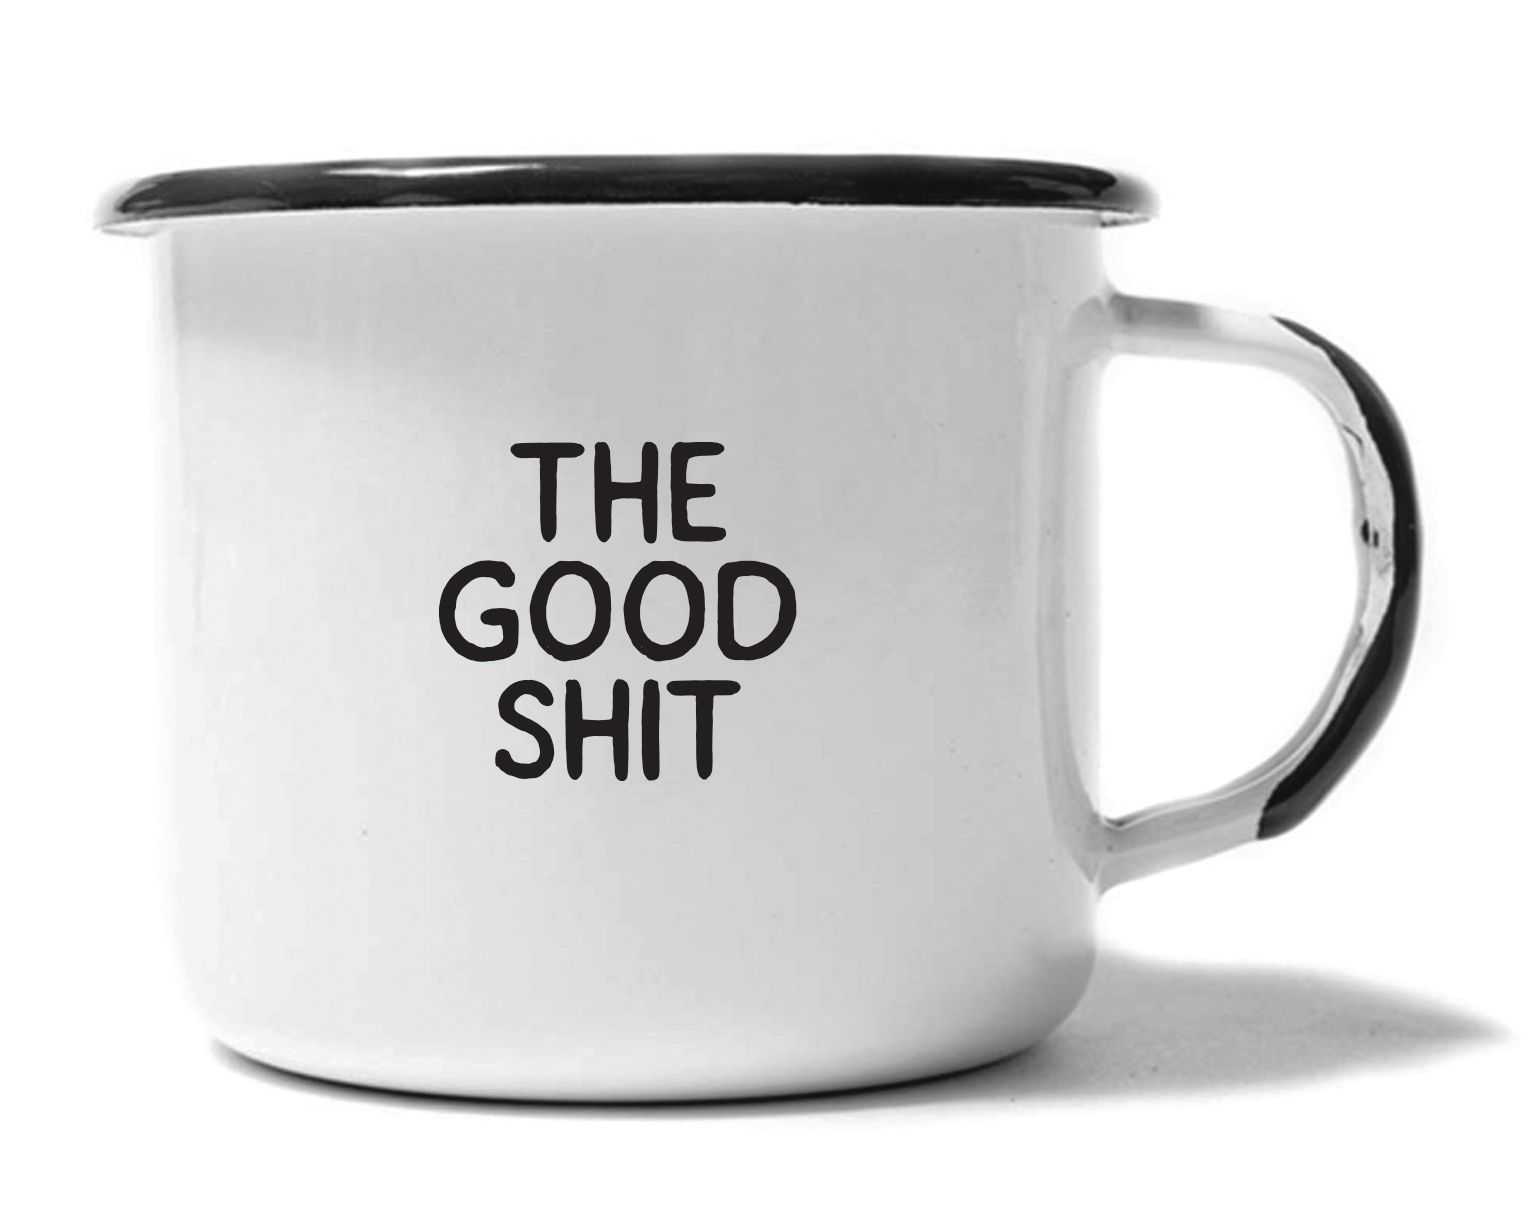 THE GOOD SHIT - ENAMEL CAMPFIRE MUG